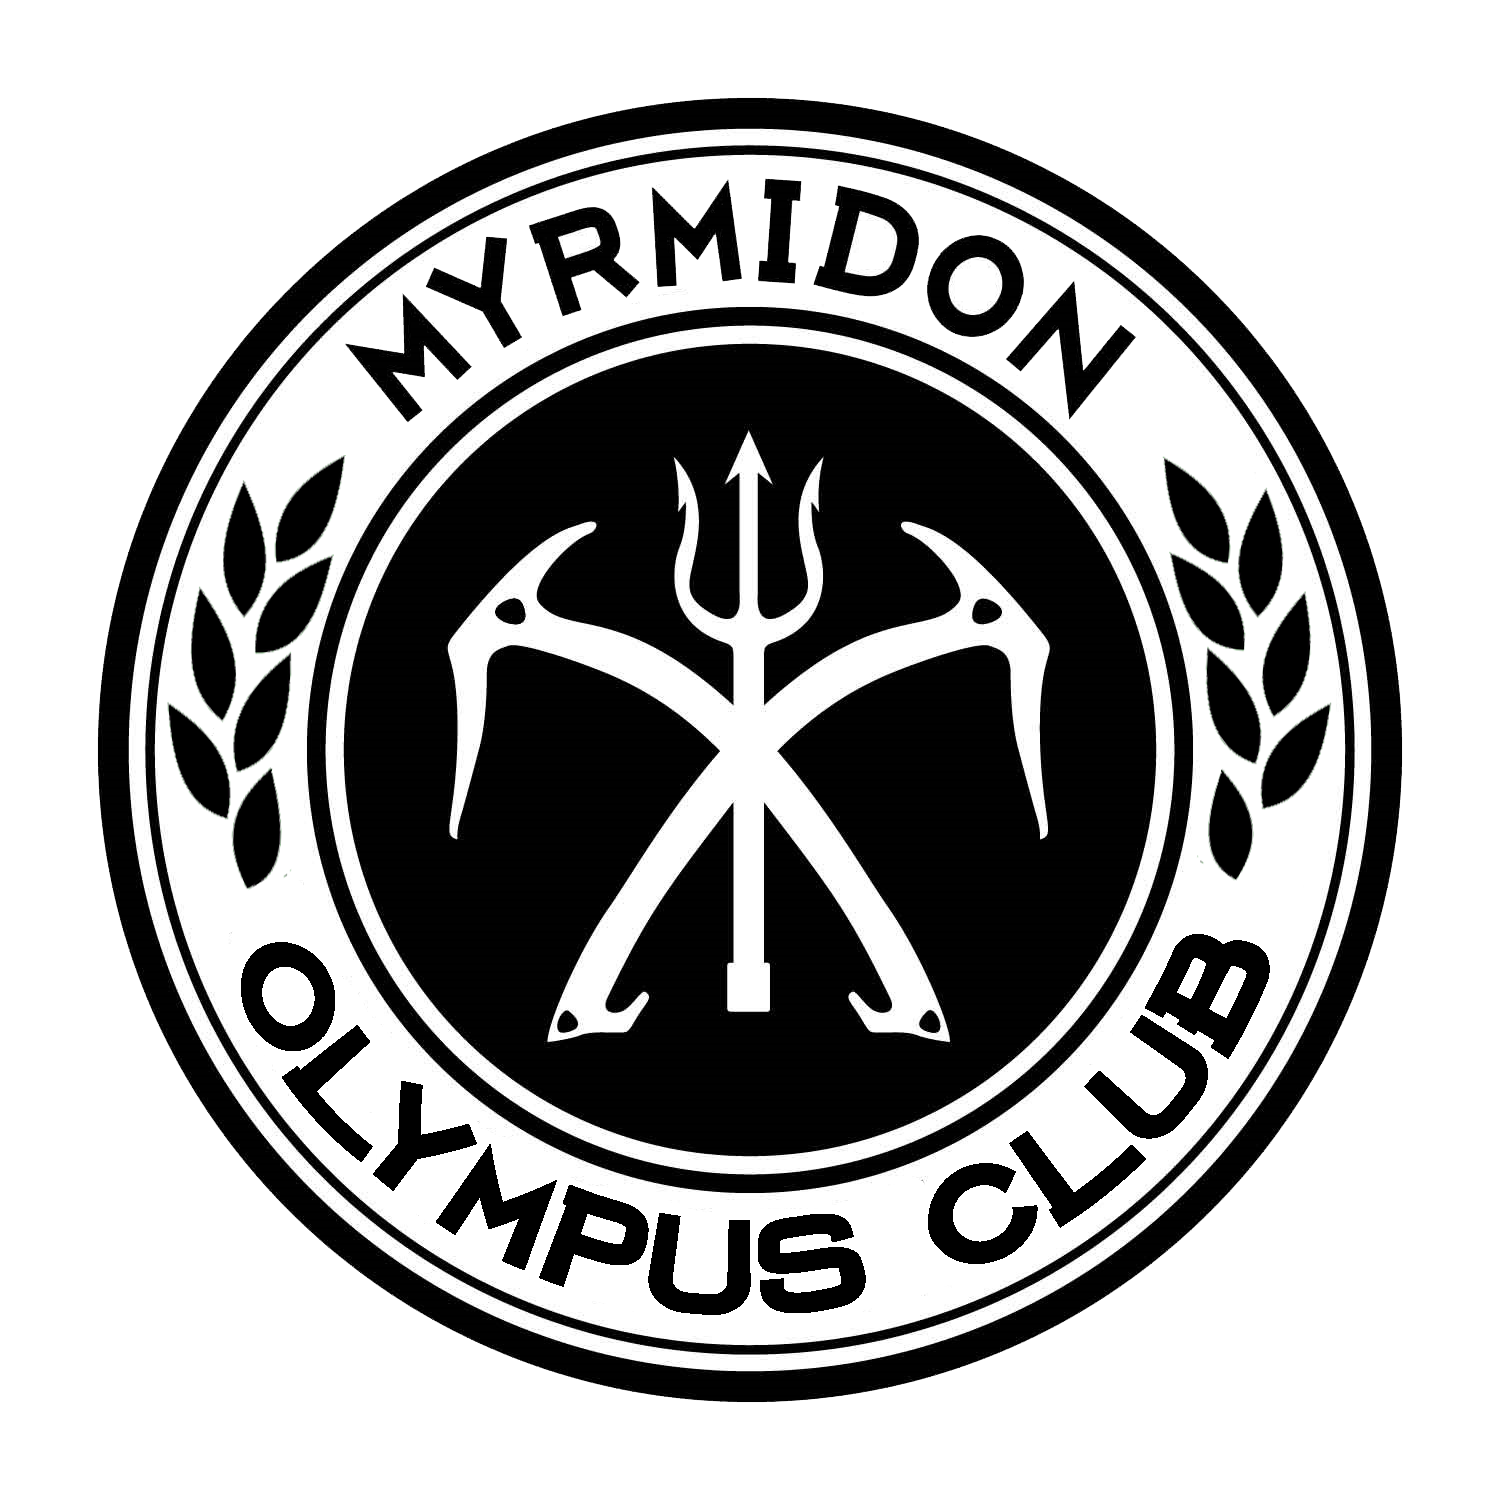 Myrmidon Olympus Club - A Myrmidon Expeditions Company